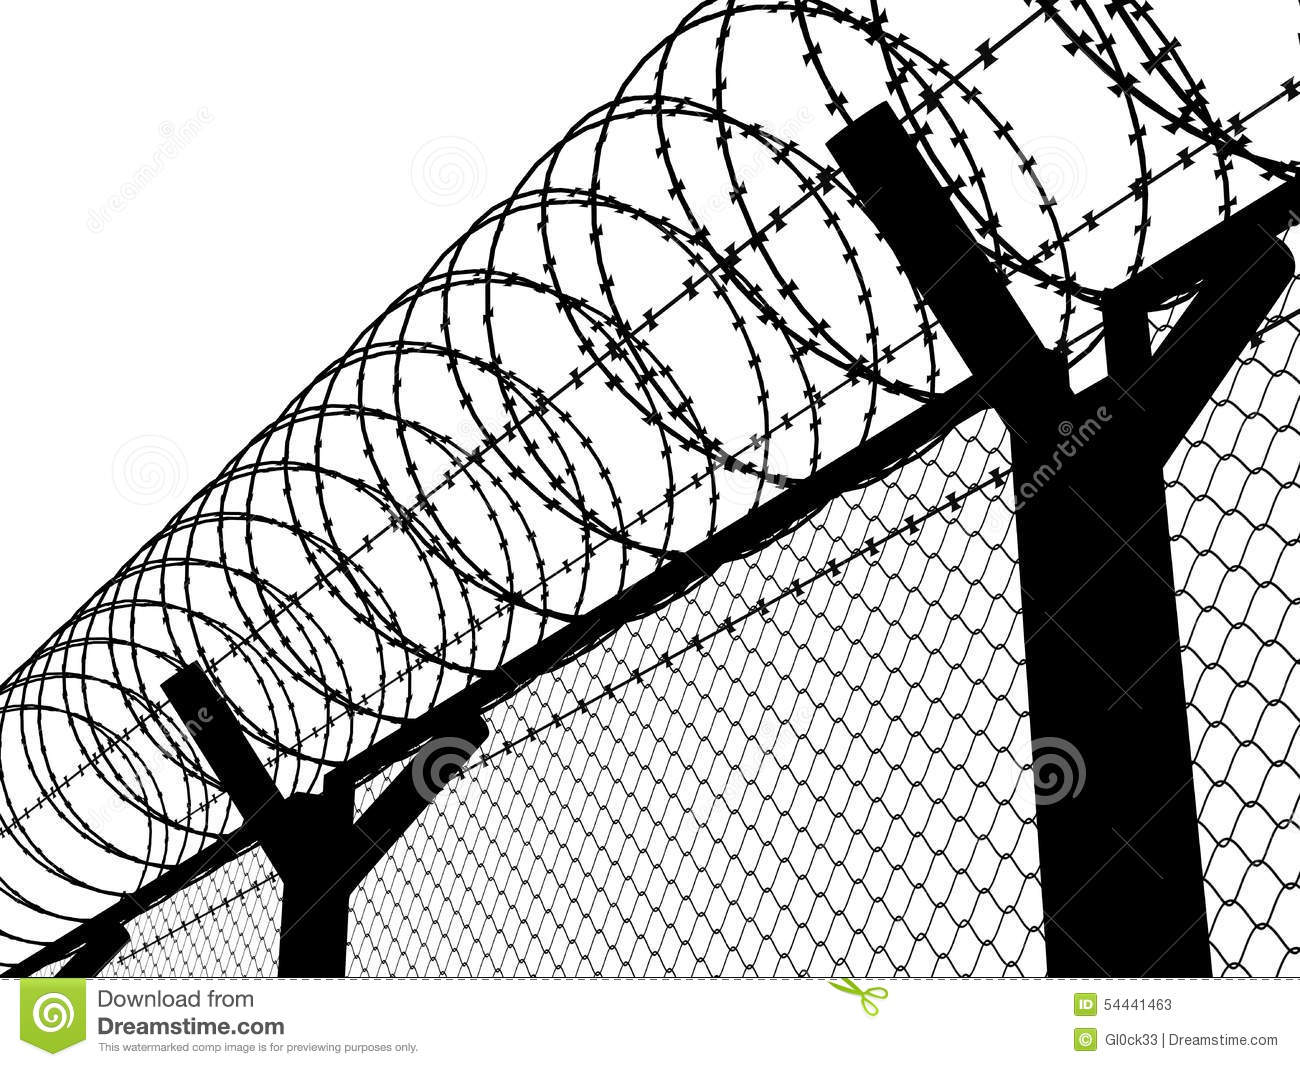 Fence with a barbed wire stock illustration. Illustration of crime ...